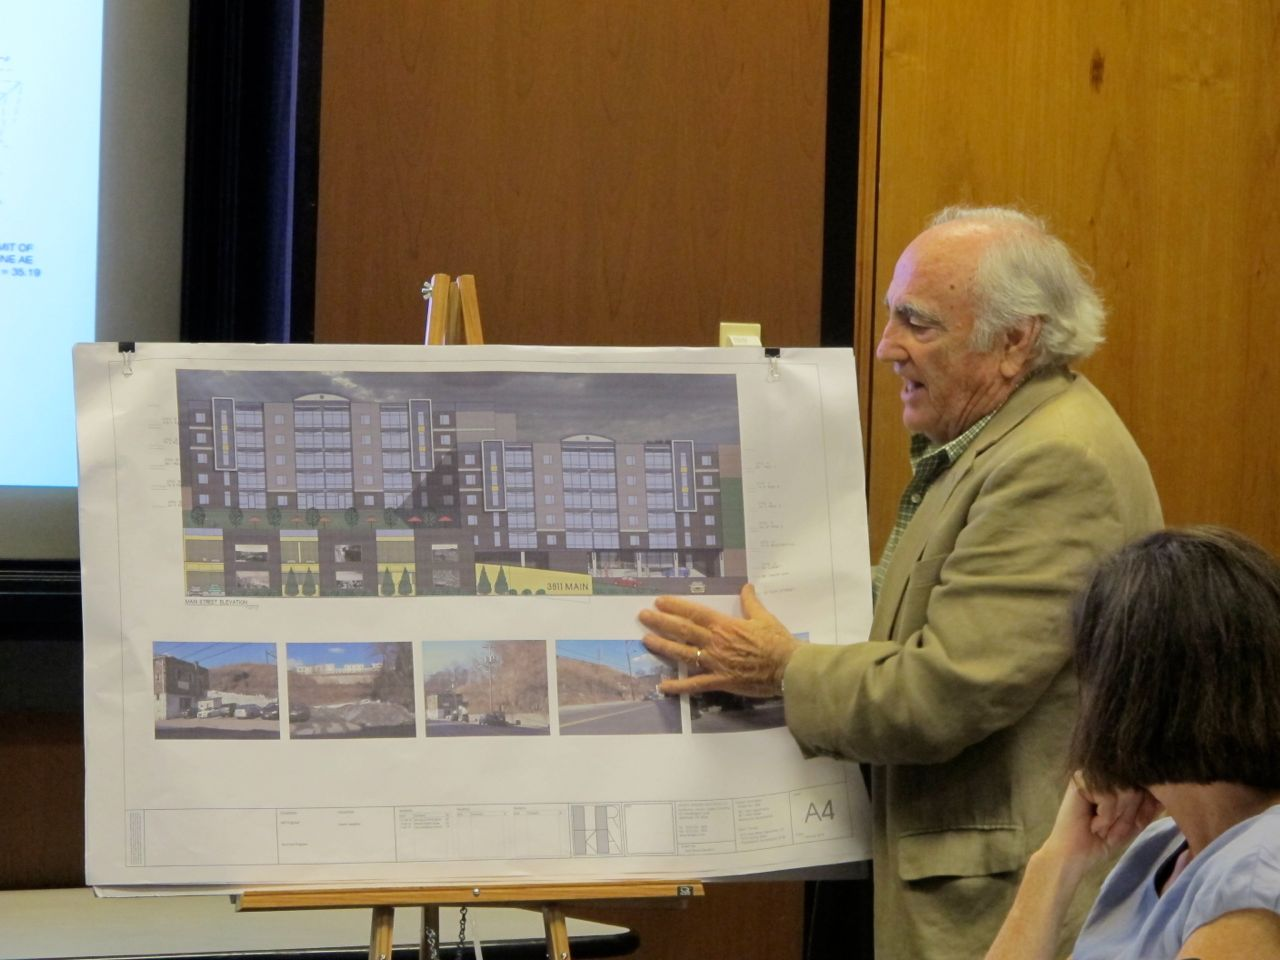 Stephen Goldner presents Manayunk Main Street plan